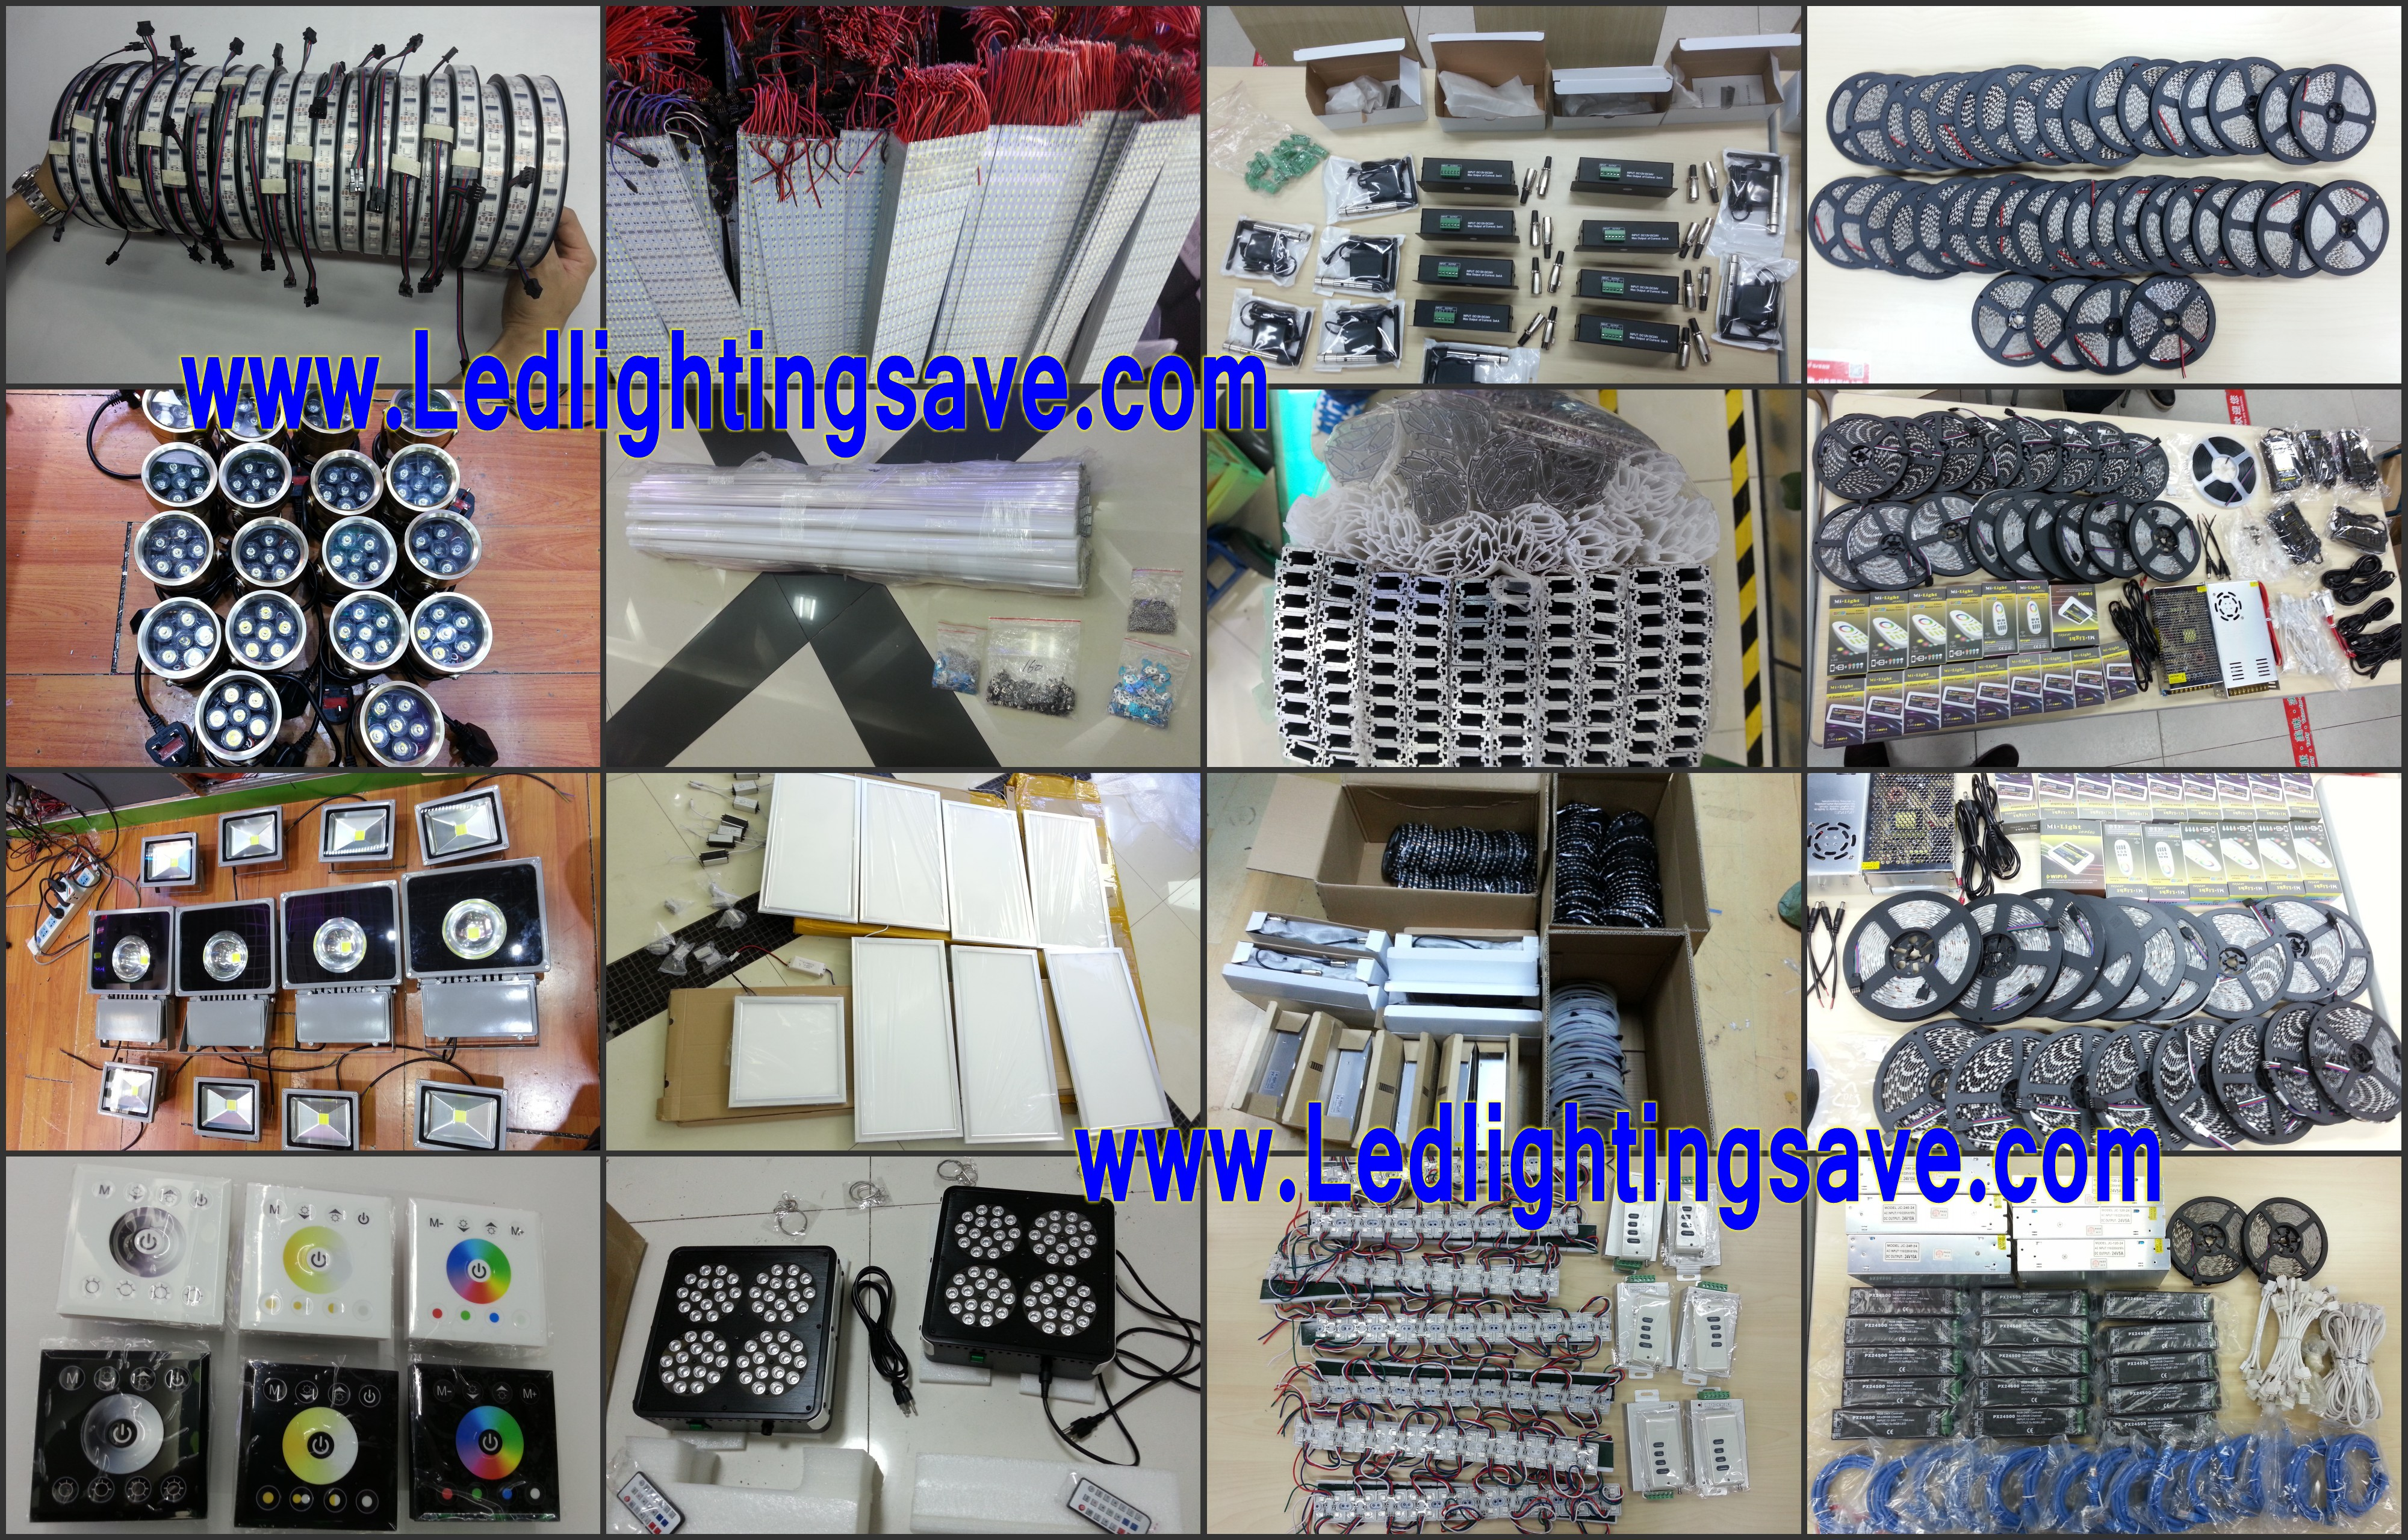 orders_to_ledlightingsave_website